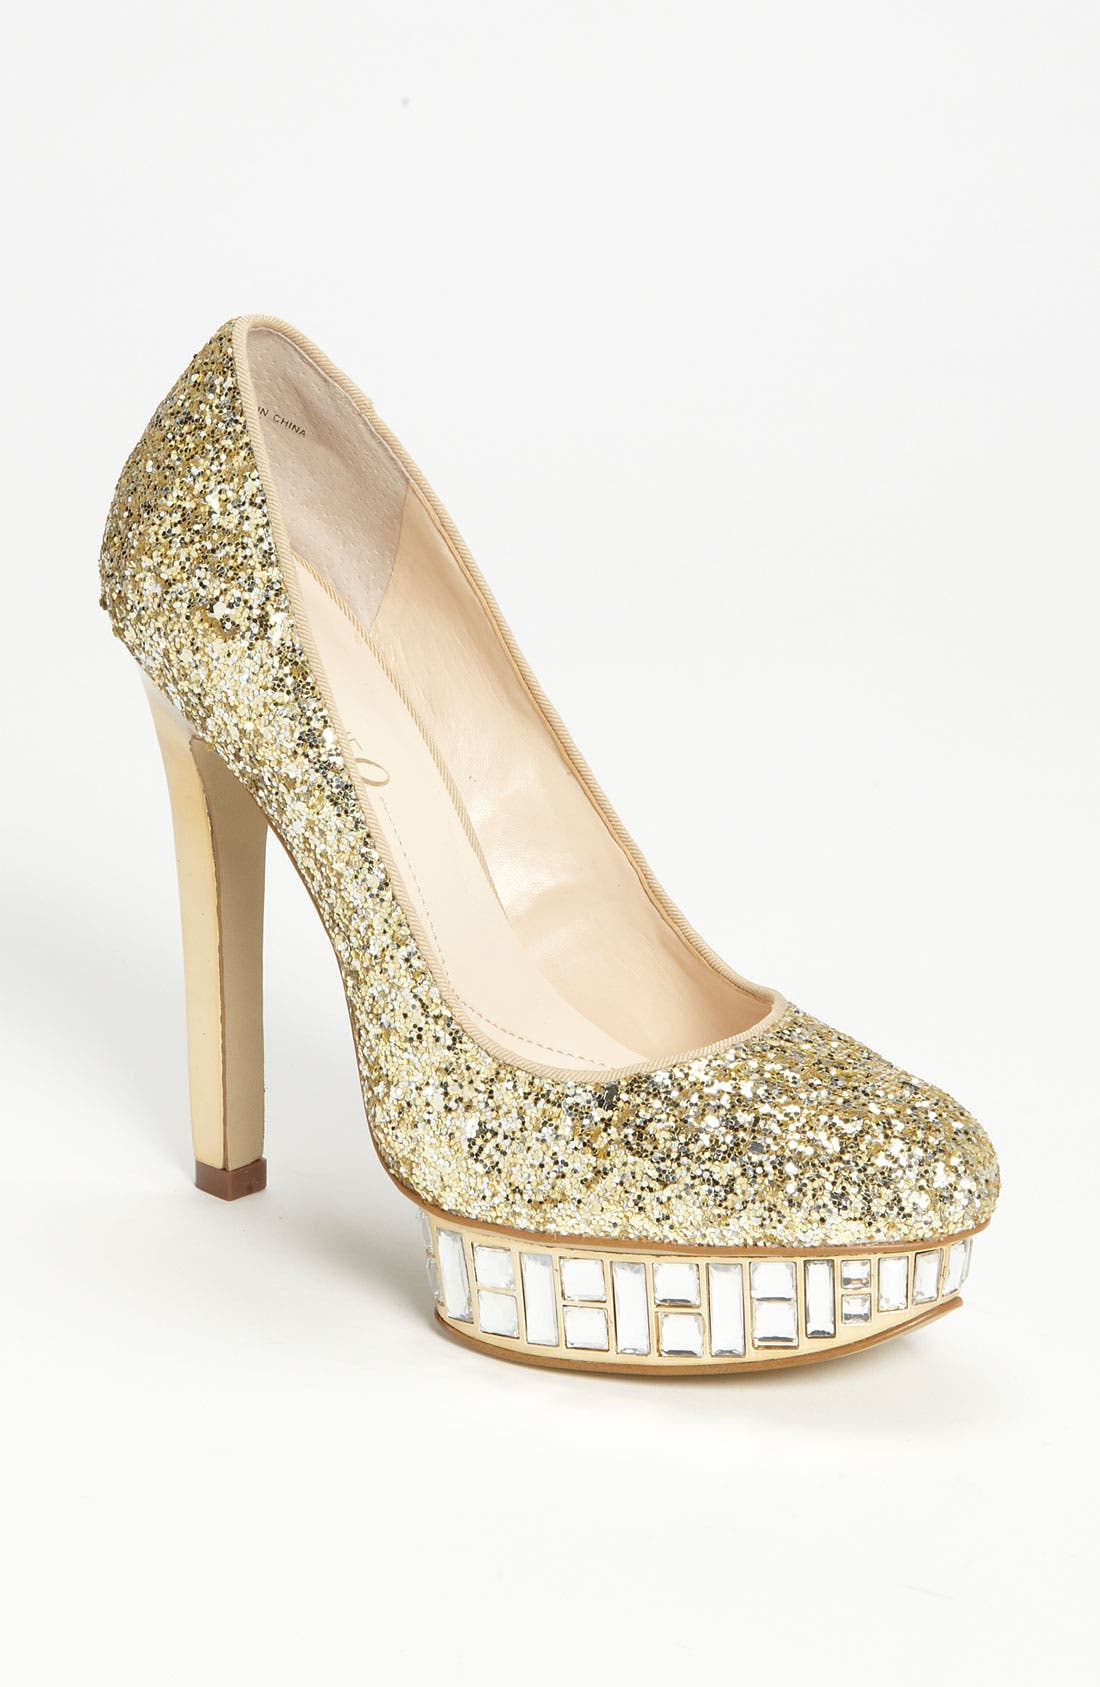 Alternate Image 1 Selected - Boutique 9 'Lidia' Pump